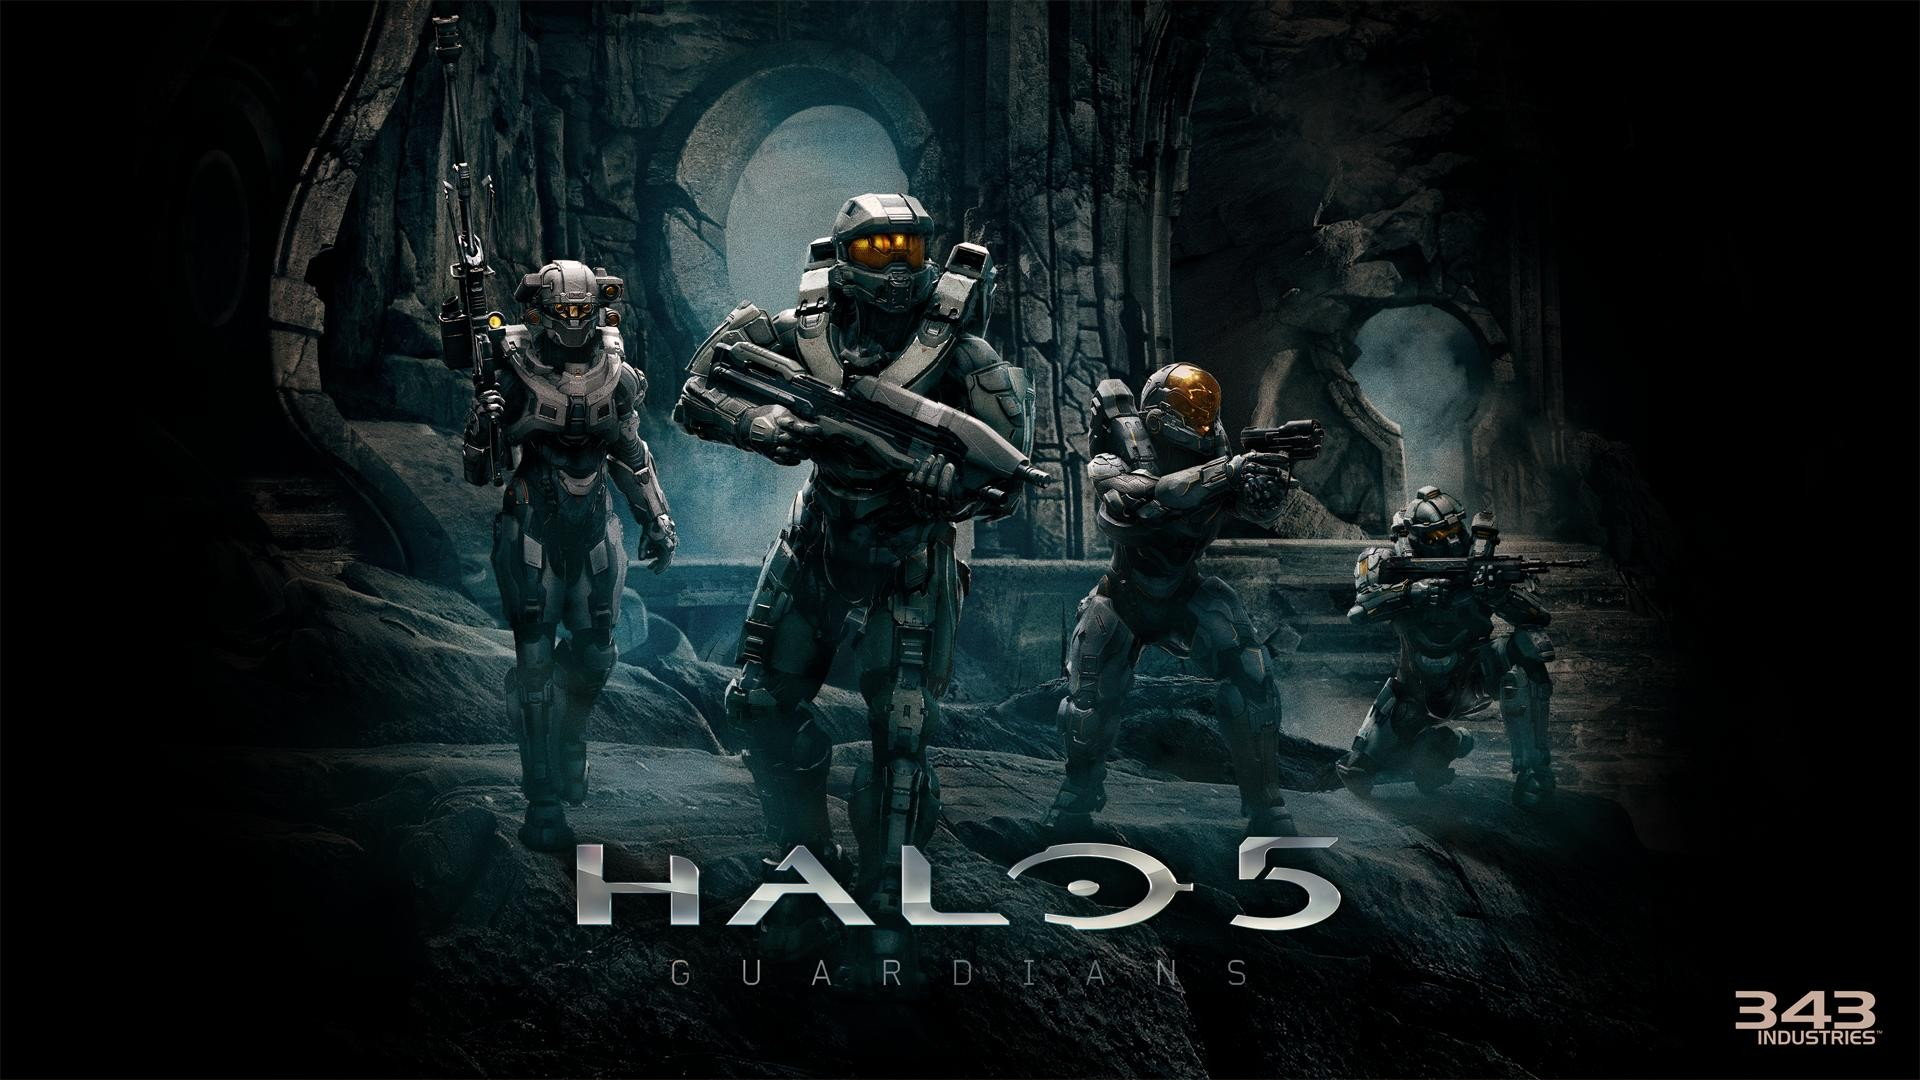 Wallpaper Halo 5 Guardians 06 sur PS4 Xbox One WiiU PS3 PS Vita 1920x1080